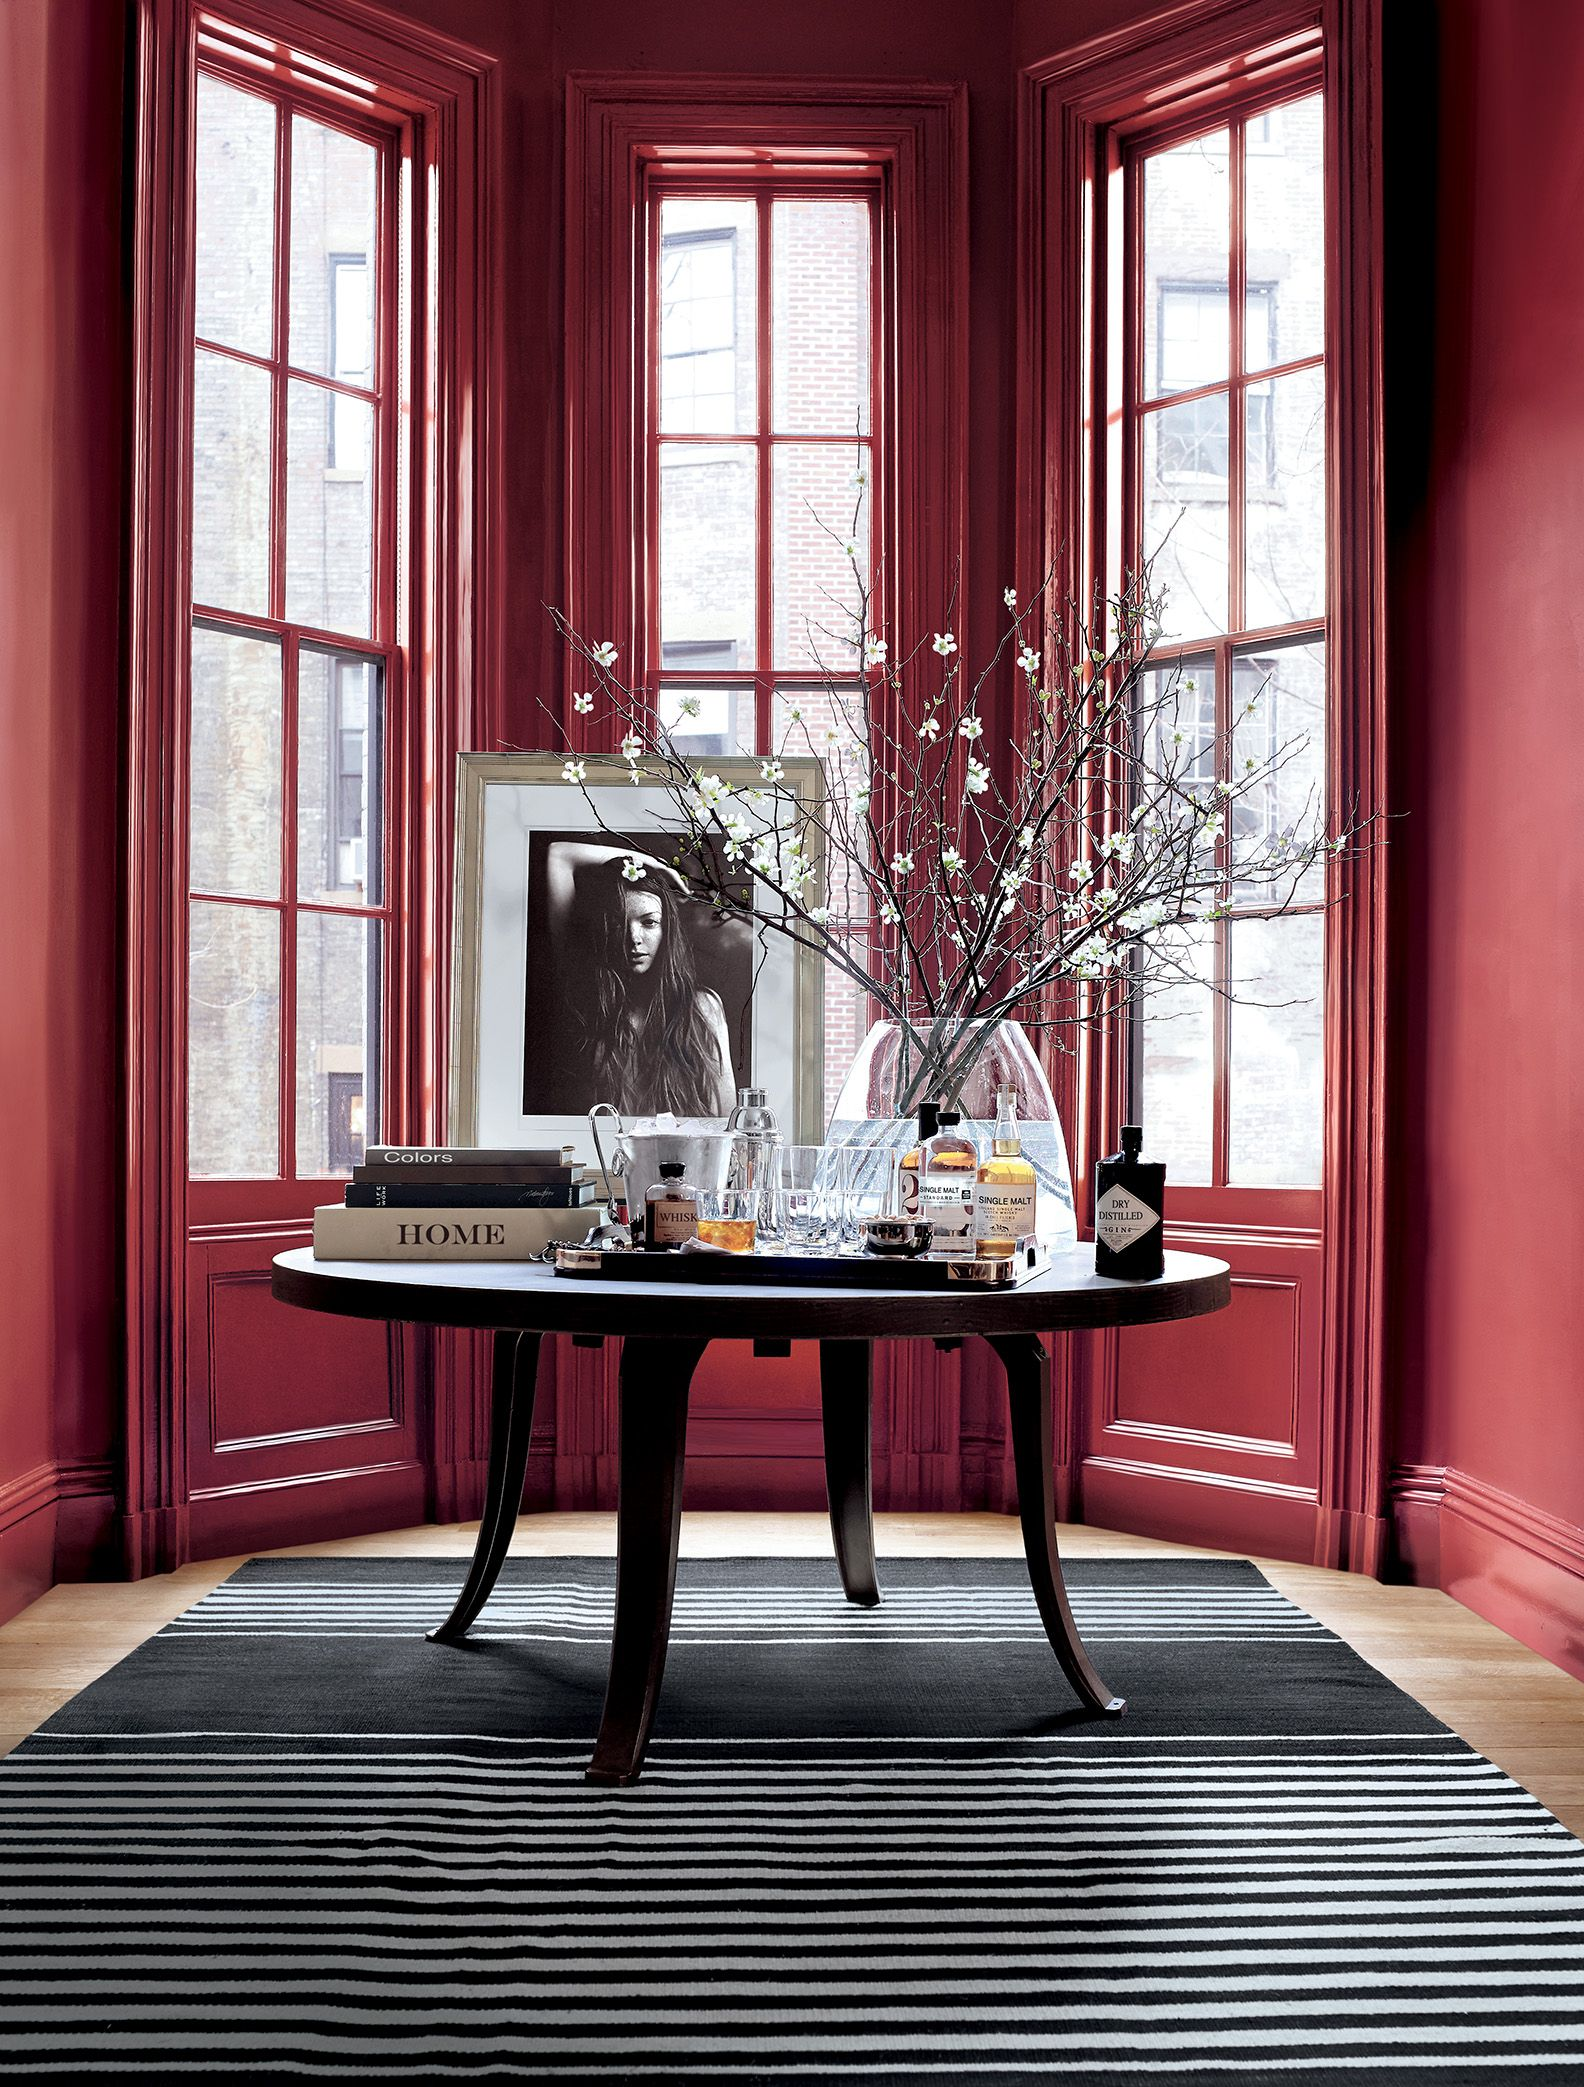 Ralph Lauren Paint Townhouse red grounds a bay window in ...